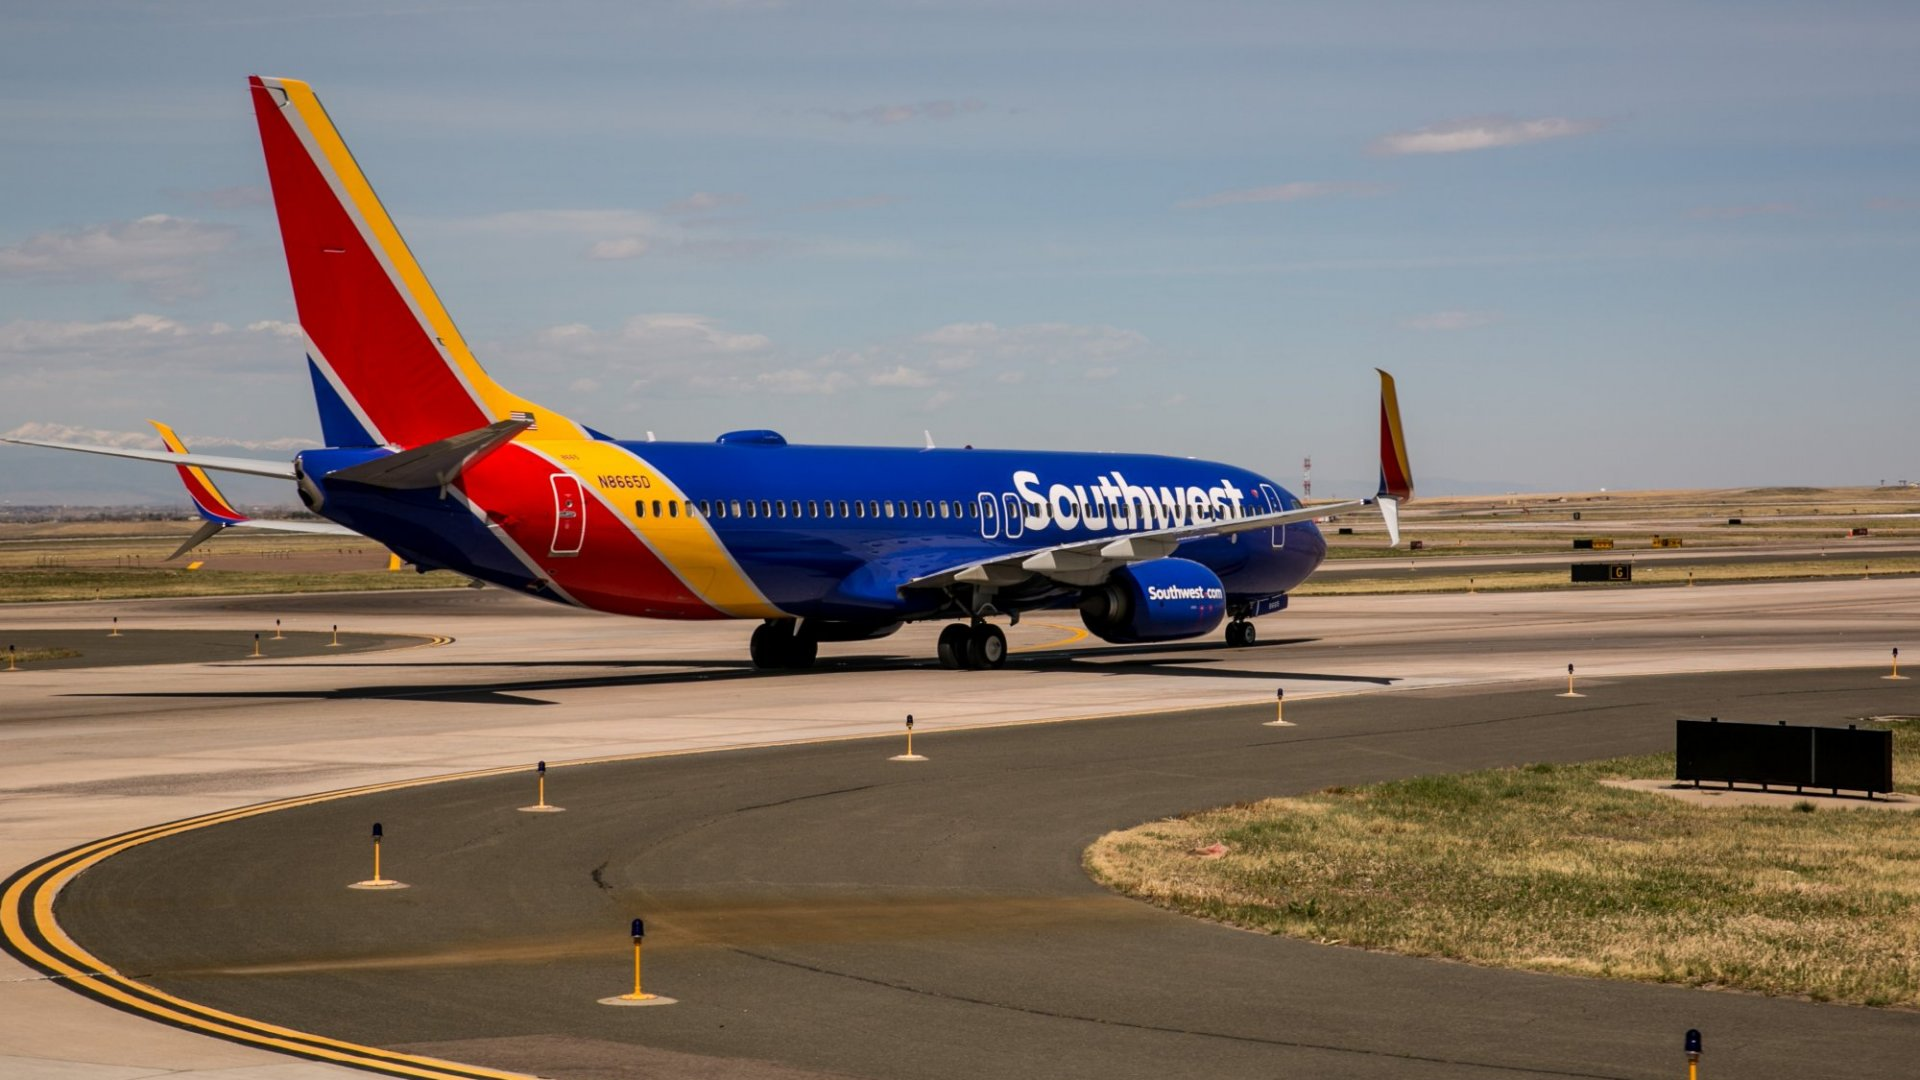 A Southwest Airlines Captain Turned a Plane Around For the Most Bizarre Reason Ever. (Here's the (Mostly) Happy Ending Nobody Could Figure Out)